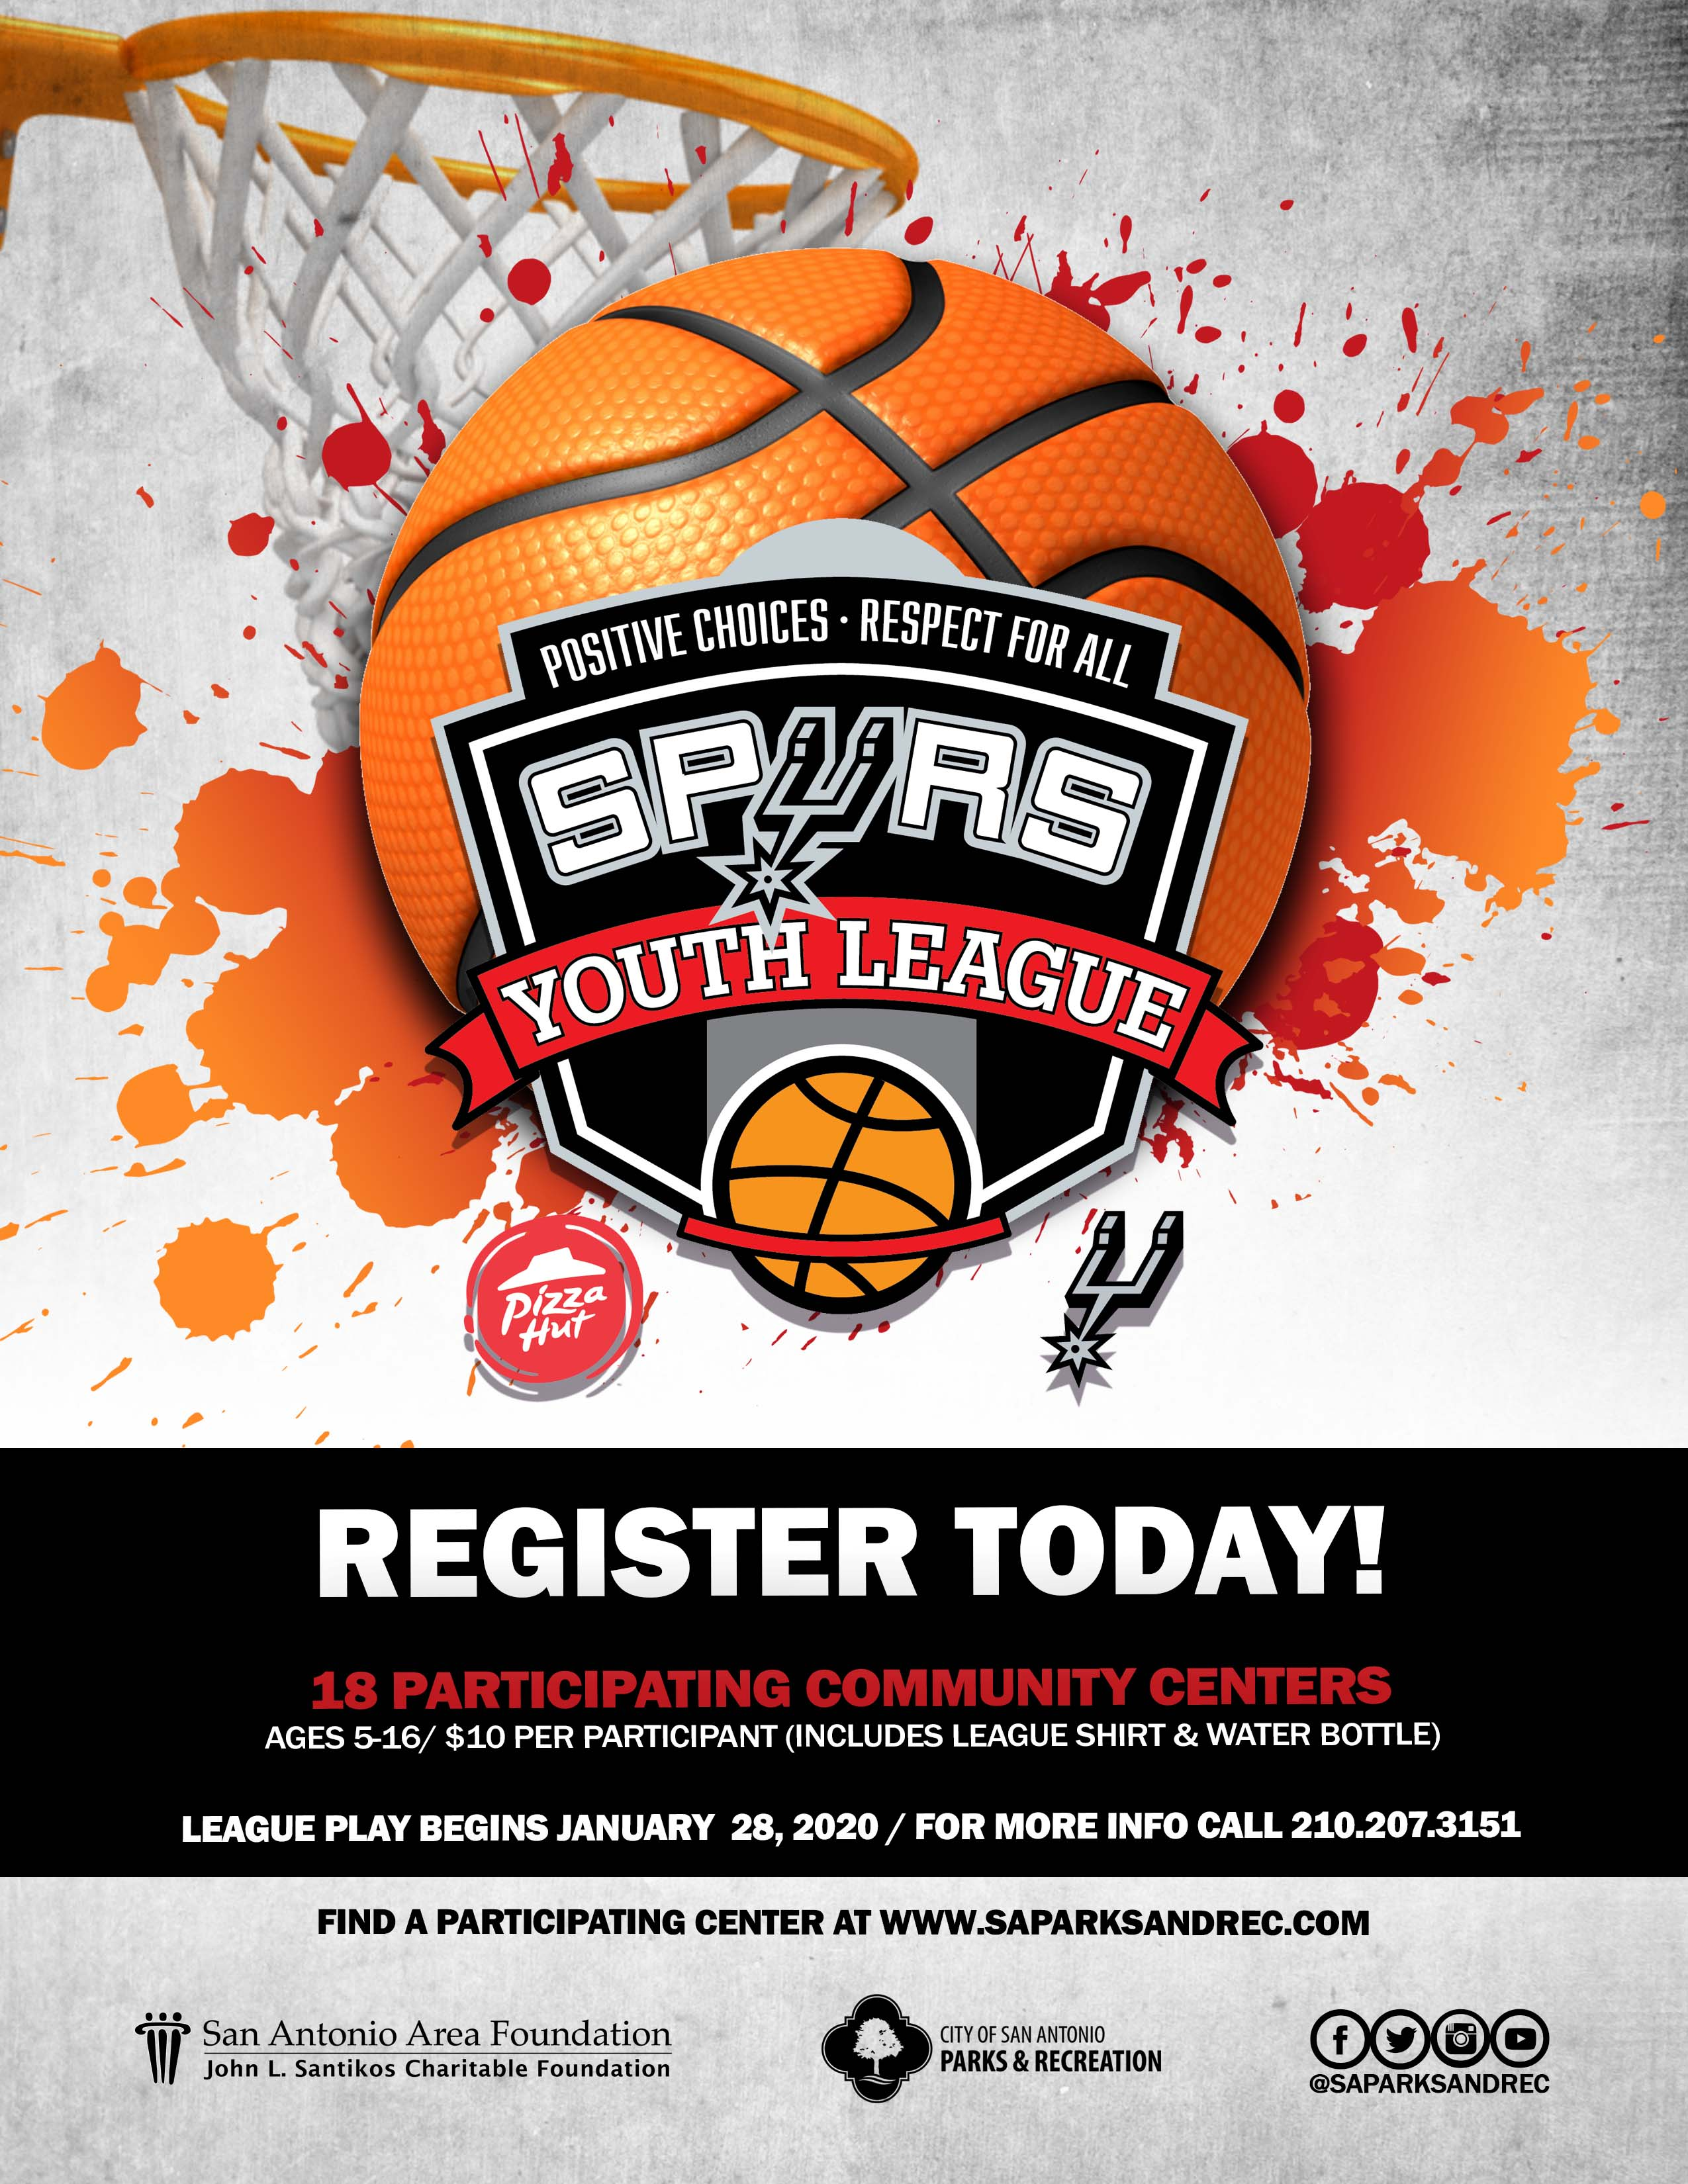 Spurs Youth Basketball League - Register Today! For more info call 210-207-3151